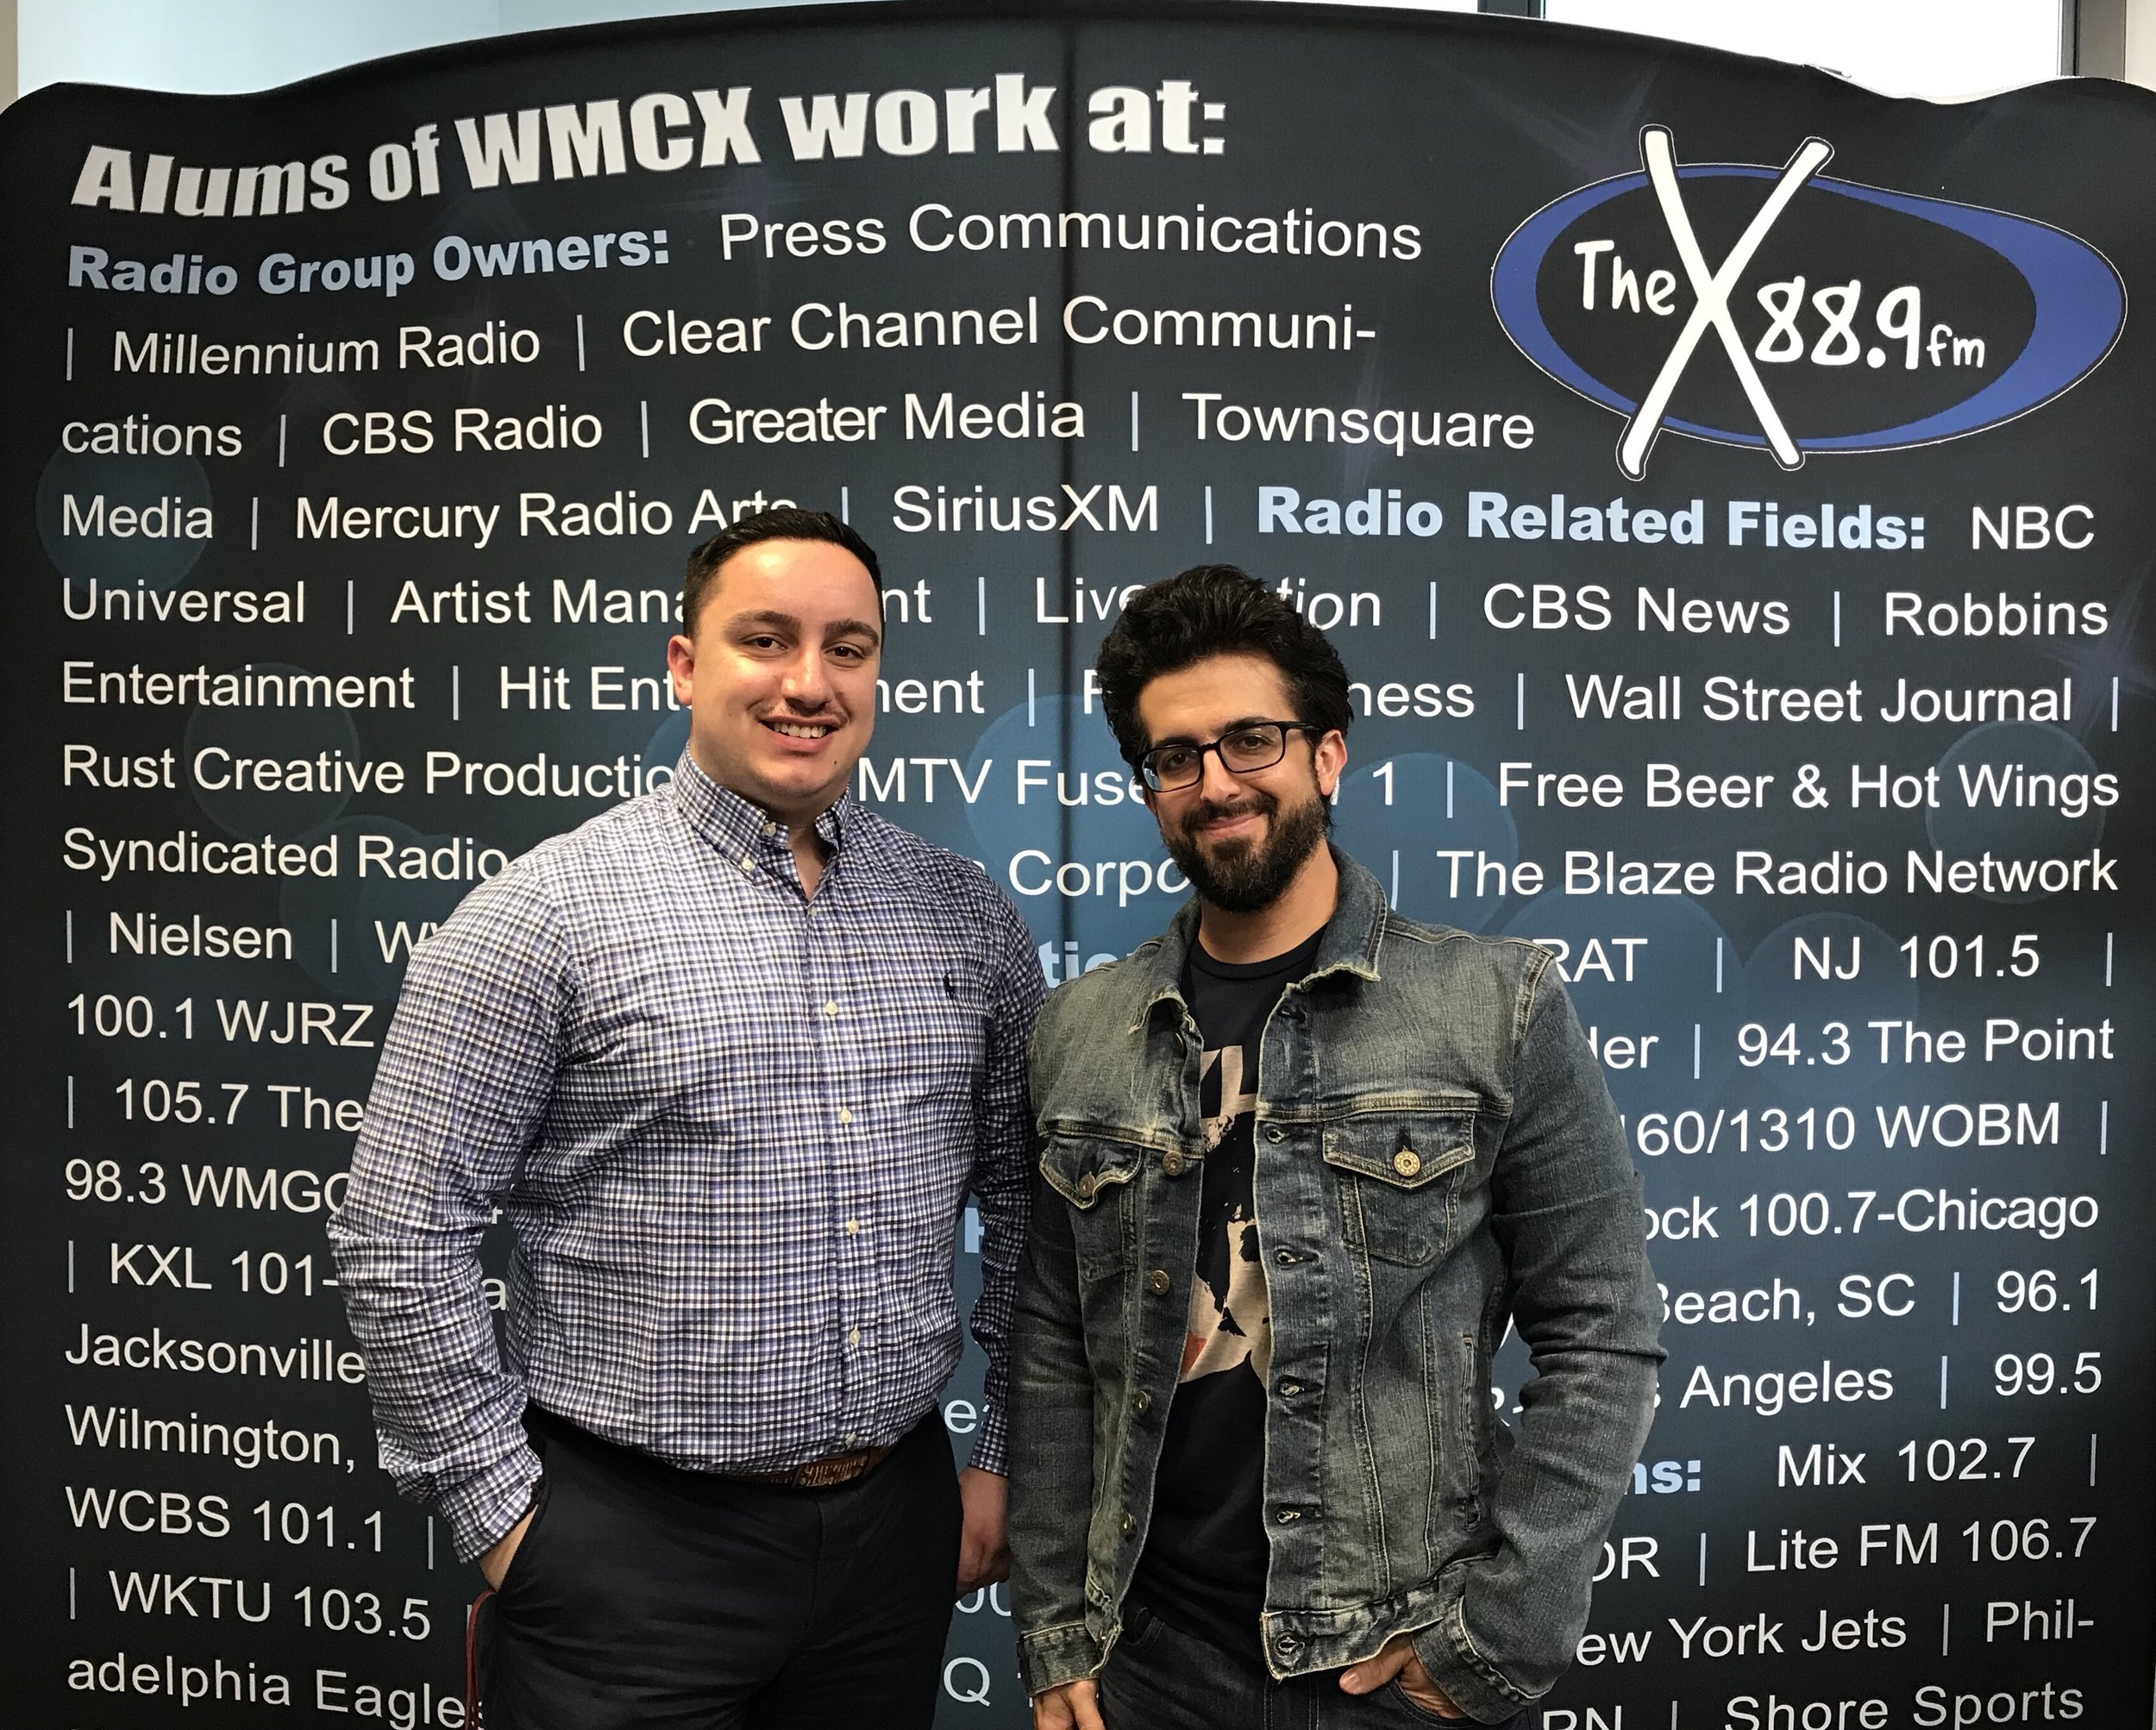 Randy Cabrera from Monmouth University's WMCX Radio